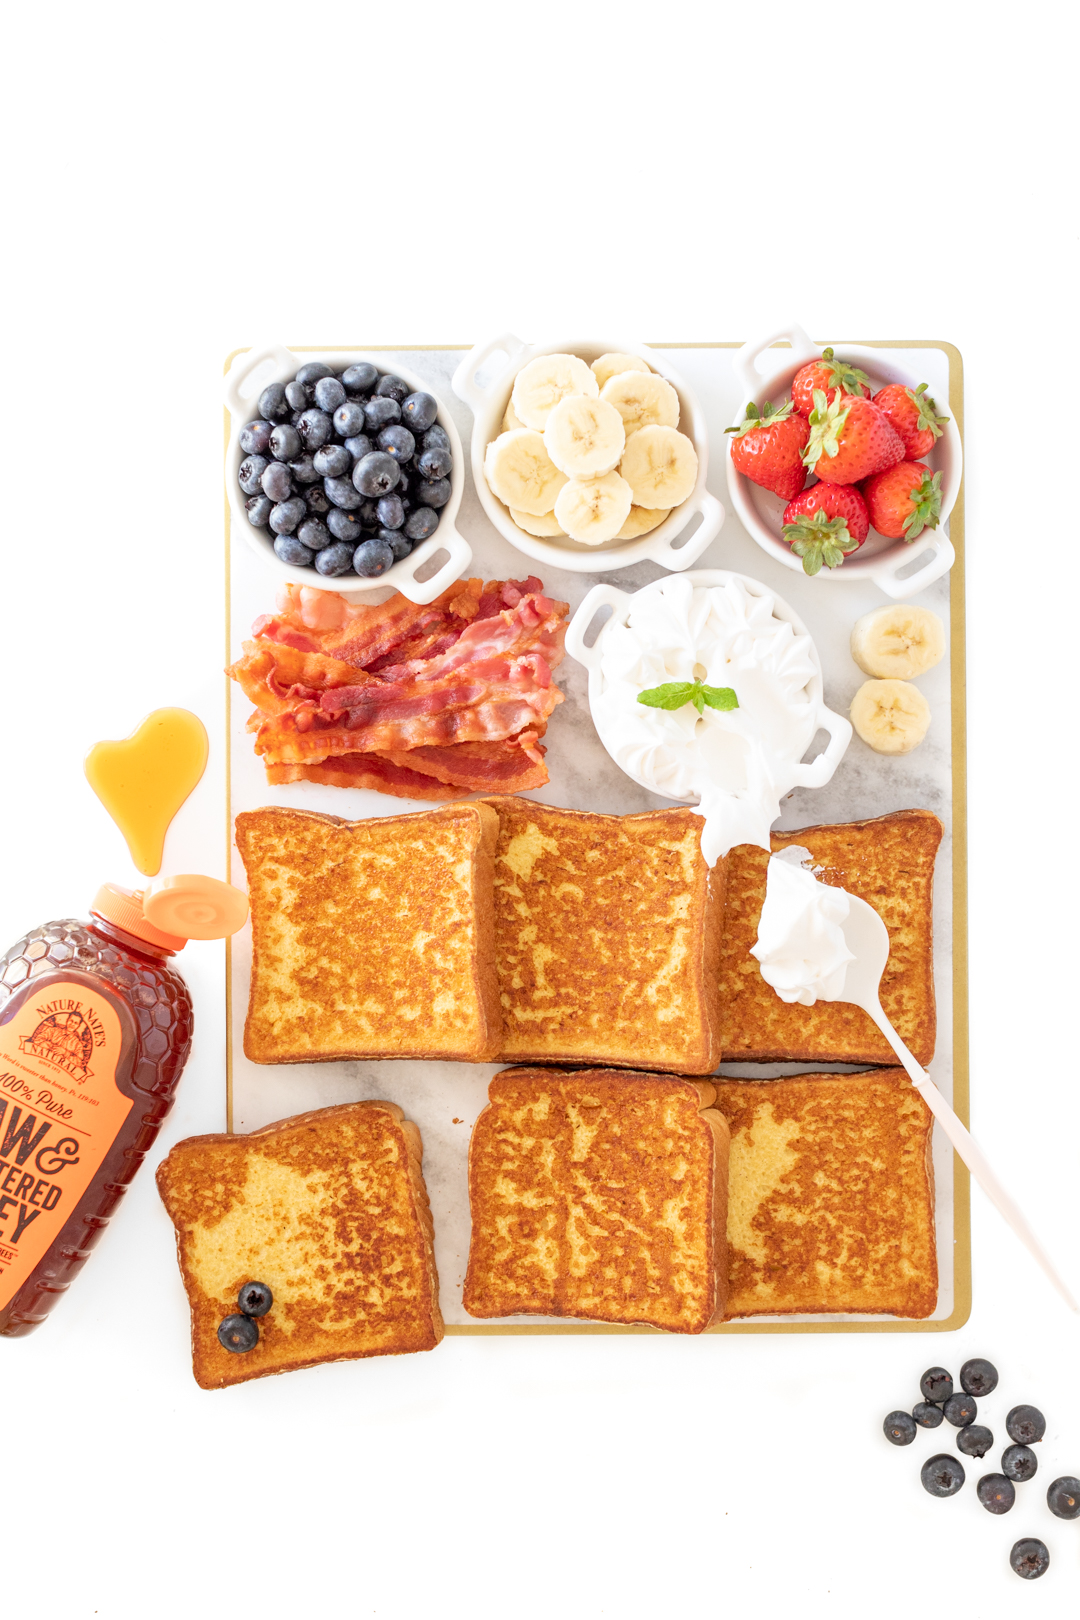 Delish french toast charcuterie board for two